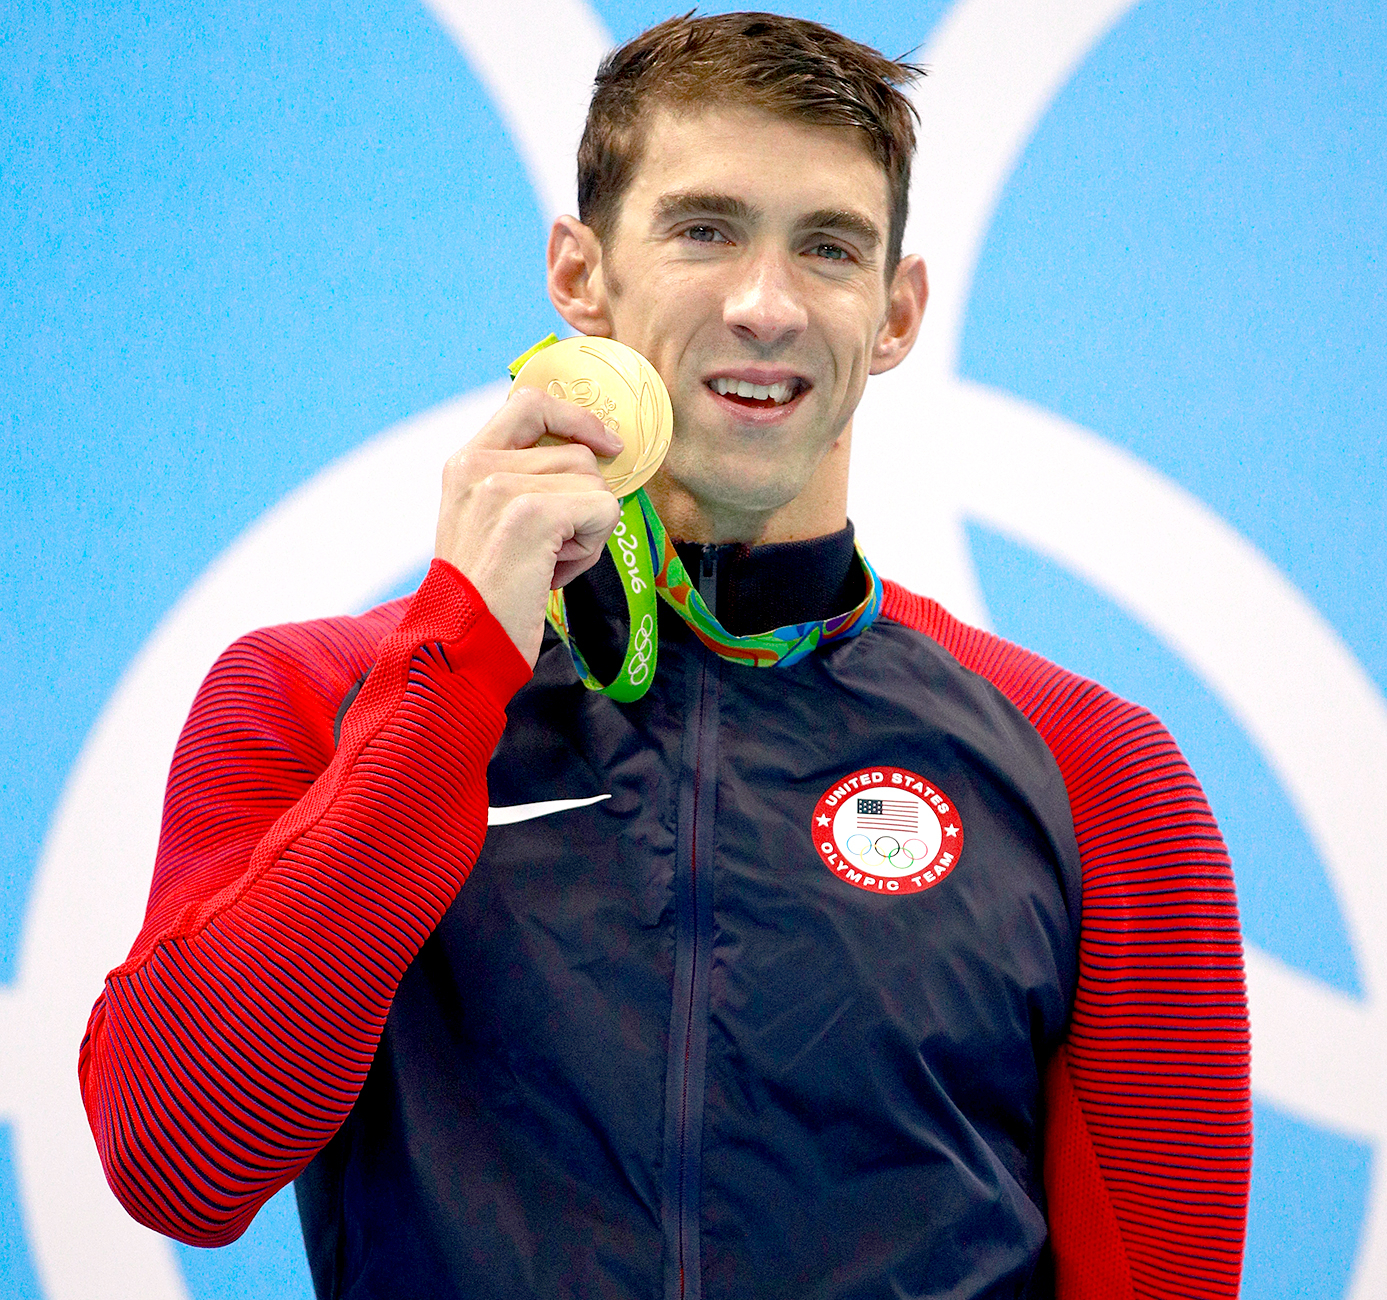 Gold medalist Michael Phelps of the United States poses on the podium during the medal ceremony for the Men's 200m Butterfly Final on Day 4 of the Rio 2016 Olympic Games at the Olympic Aquatics Stadium on August 9, 2016 in Rio de Janeiro, Brazil.